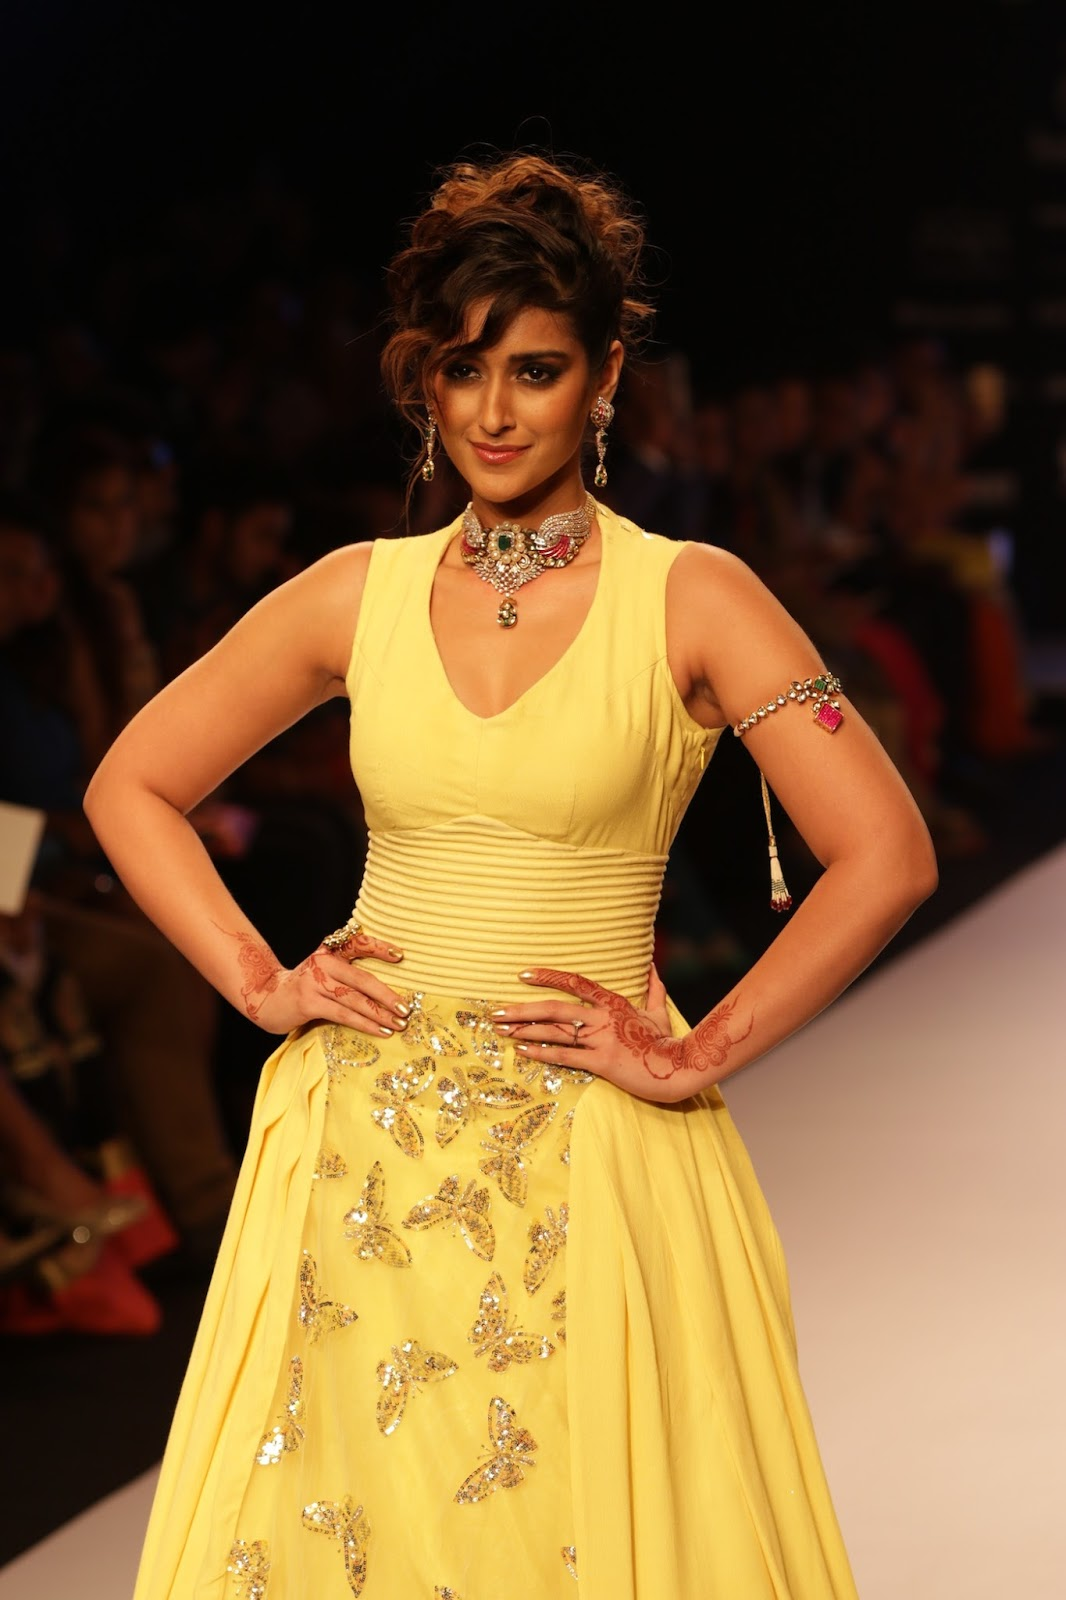 Ileana Ramp Walk Stills at IIJW 2015-HQ-Photo-2